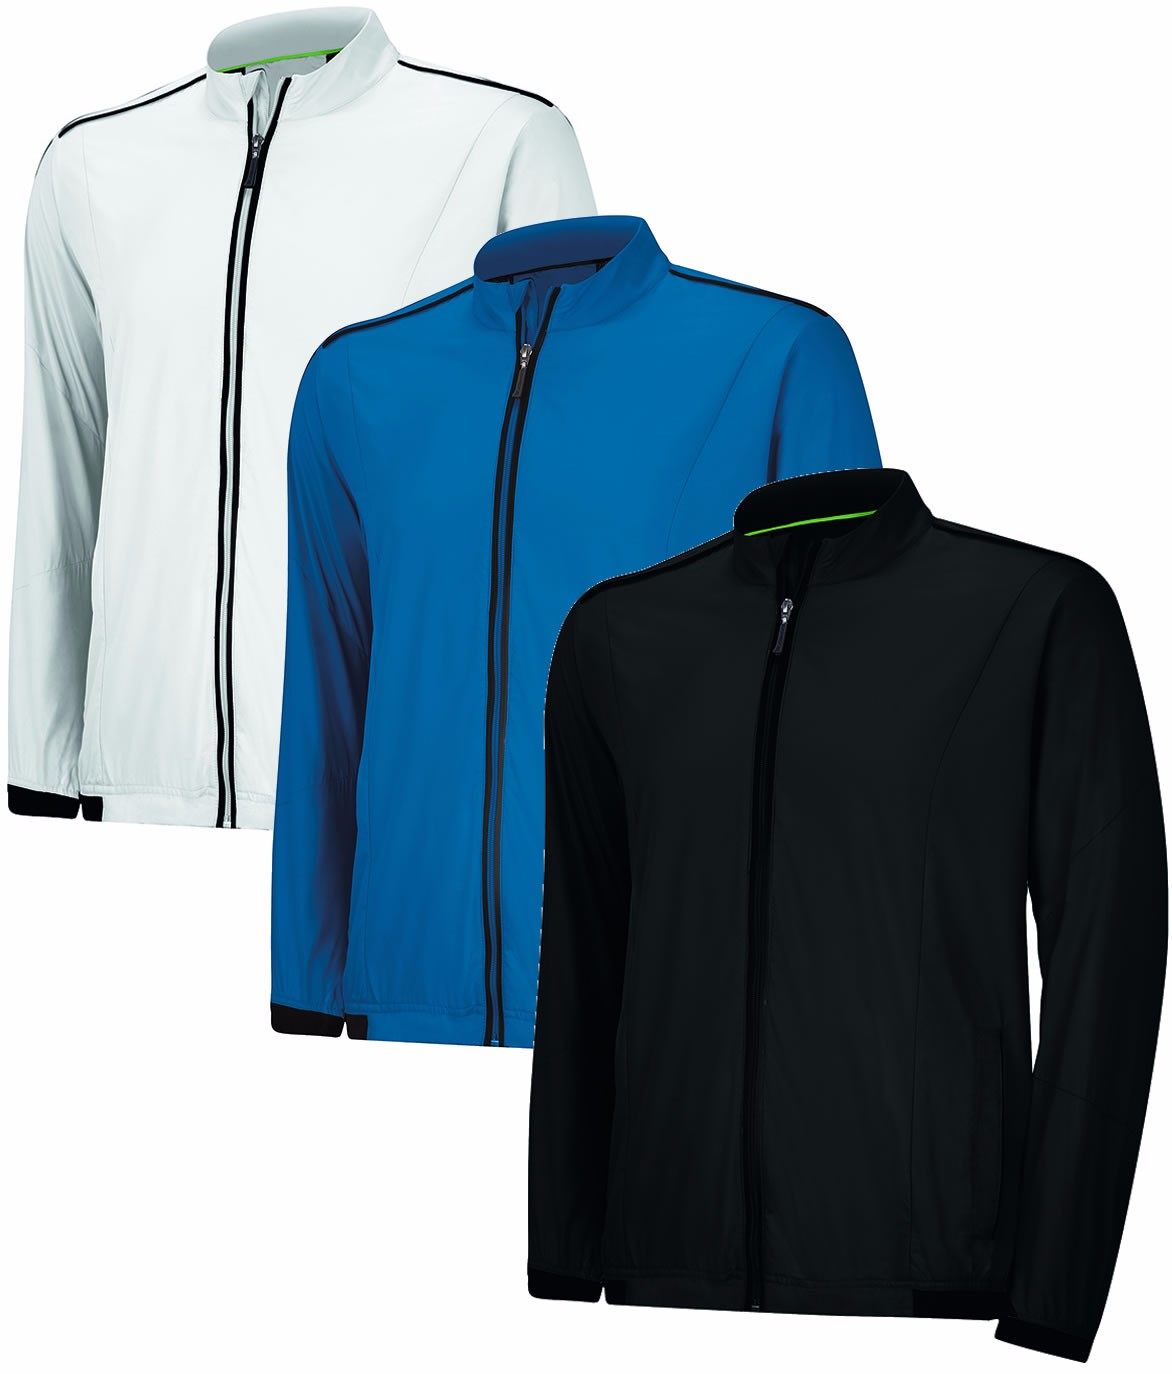 75df88623f1b Adidas ClimaProof Stretch Wind Jacket Mens Pick a Color and Size 2015